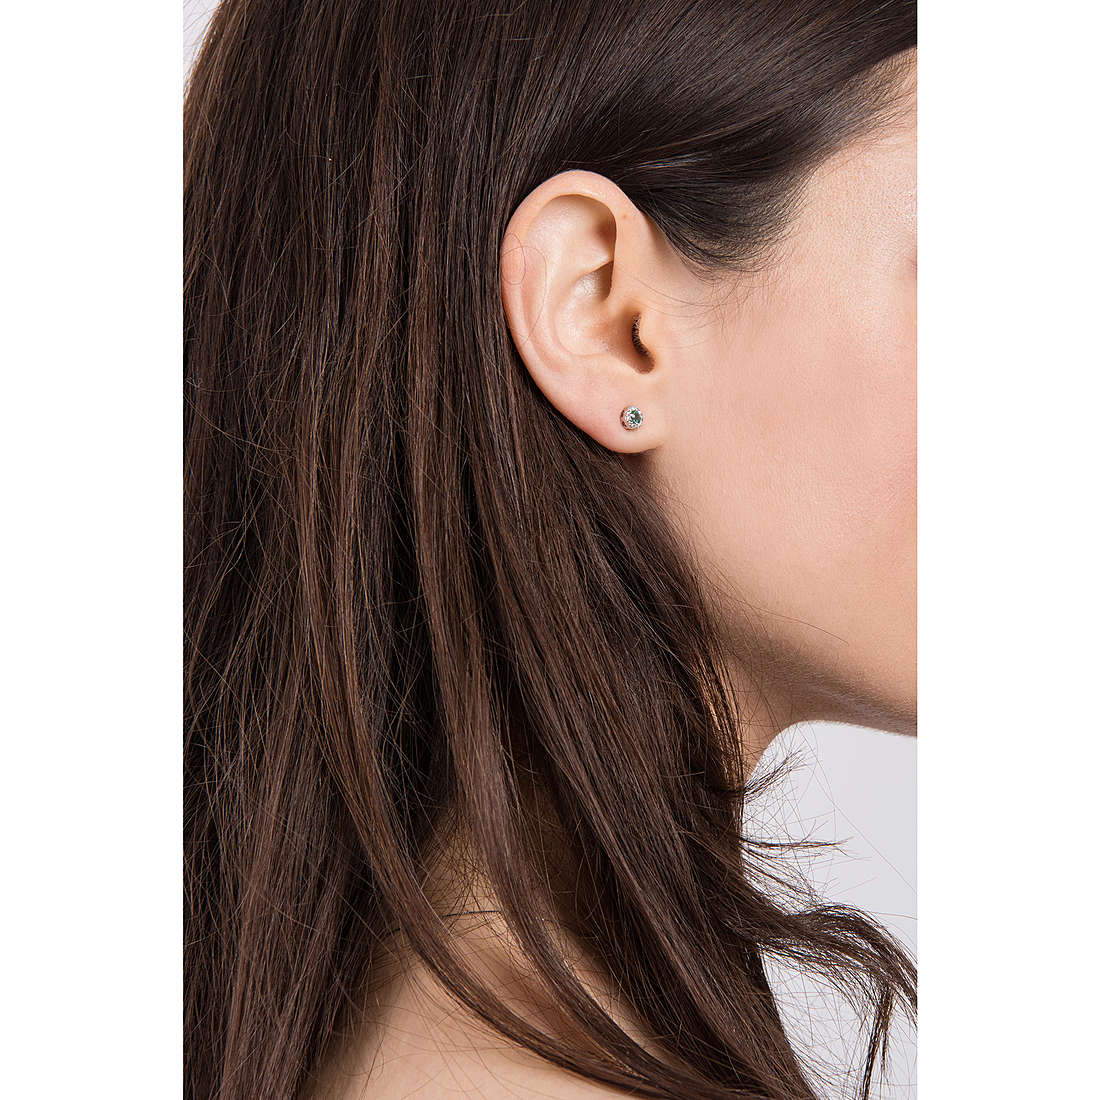 Comete boucles d'oreille Classic 07/14 femme ORB 749 photo wearing